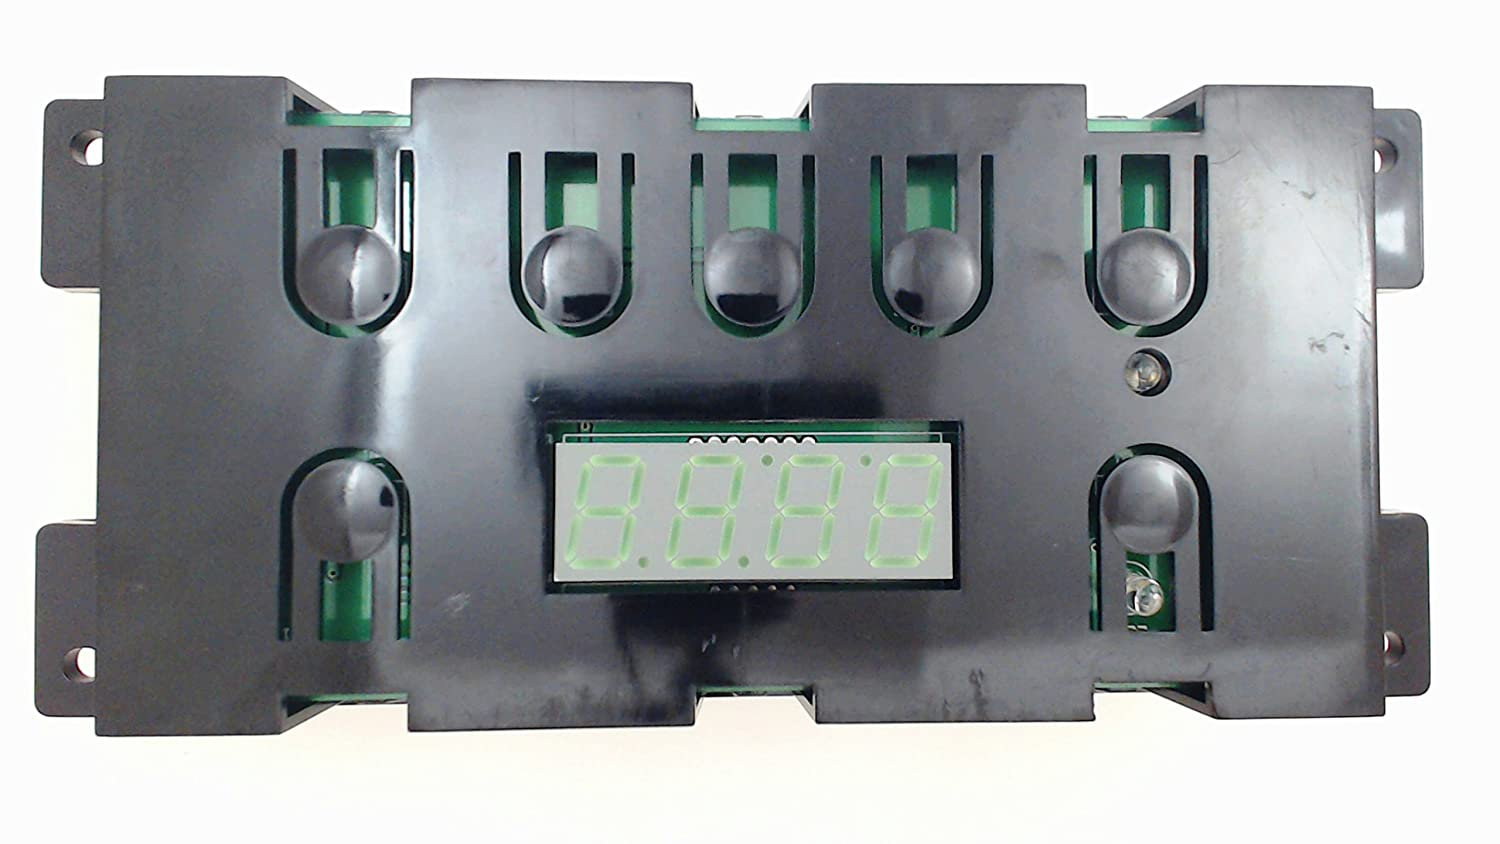 Seneca River Trading Range Electronic Control Board for Frigidaire, AP3960228, PS1528269, 316455420